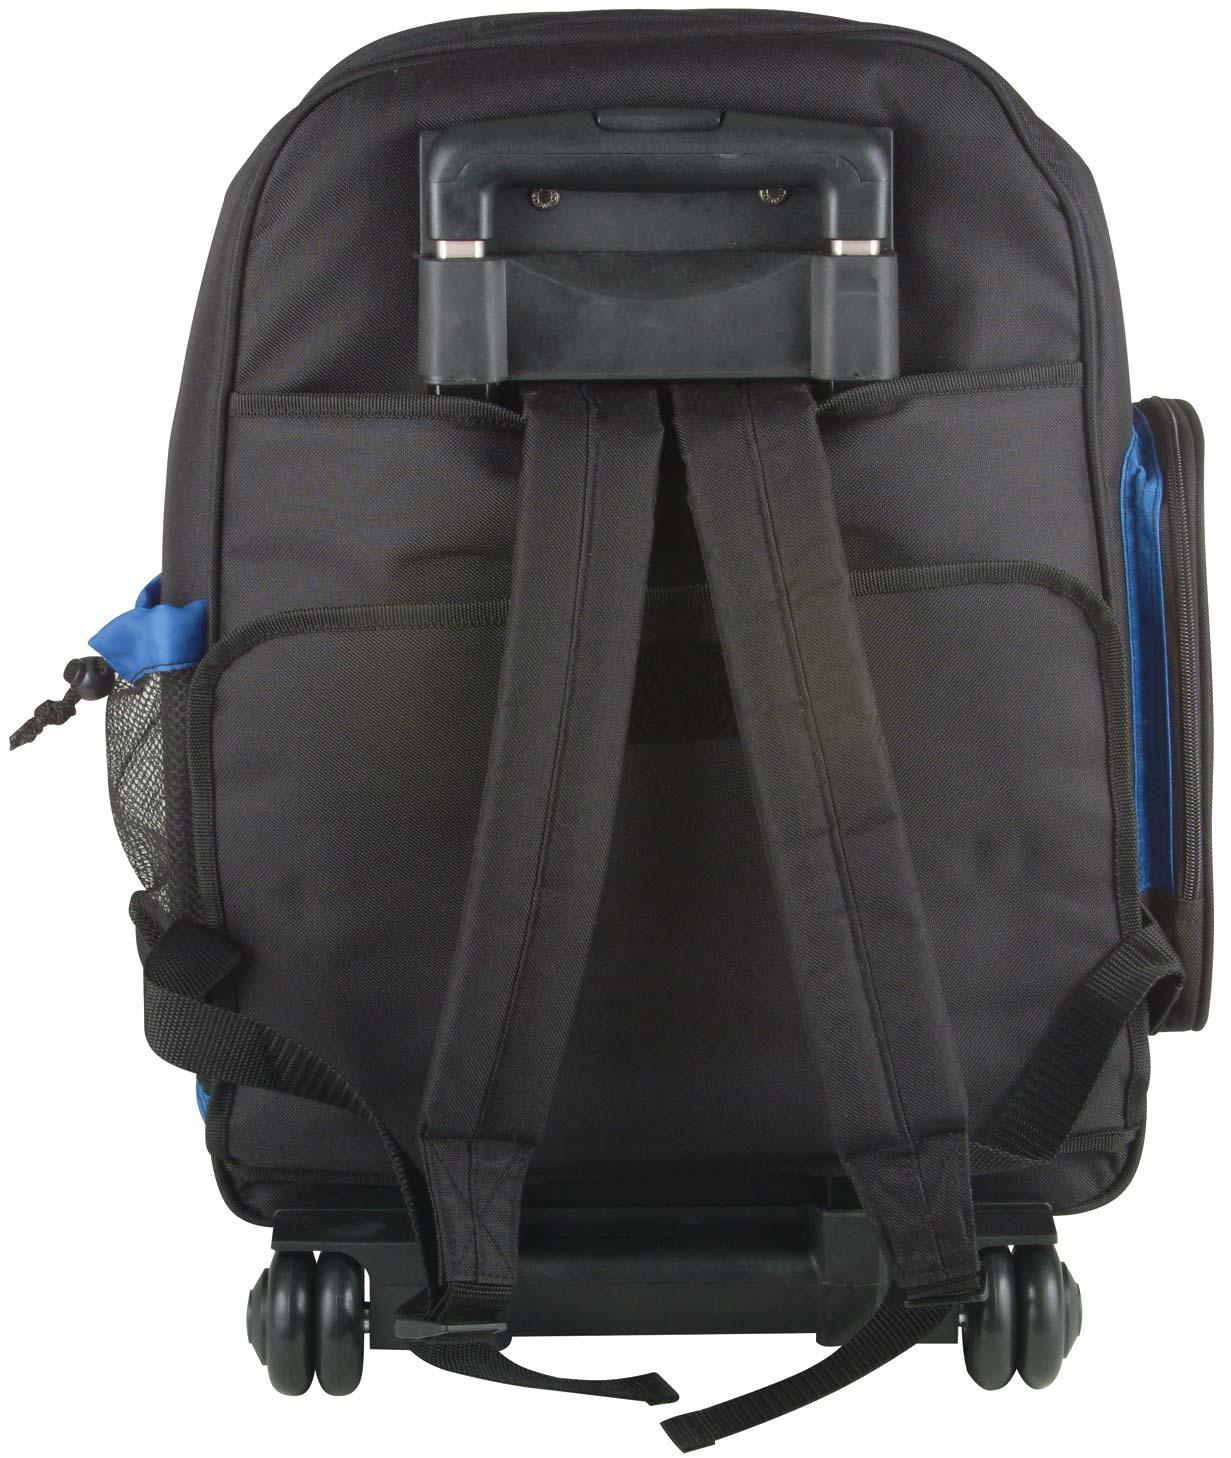 arriba ls520 wheeled backpack dj lighting transport case